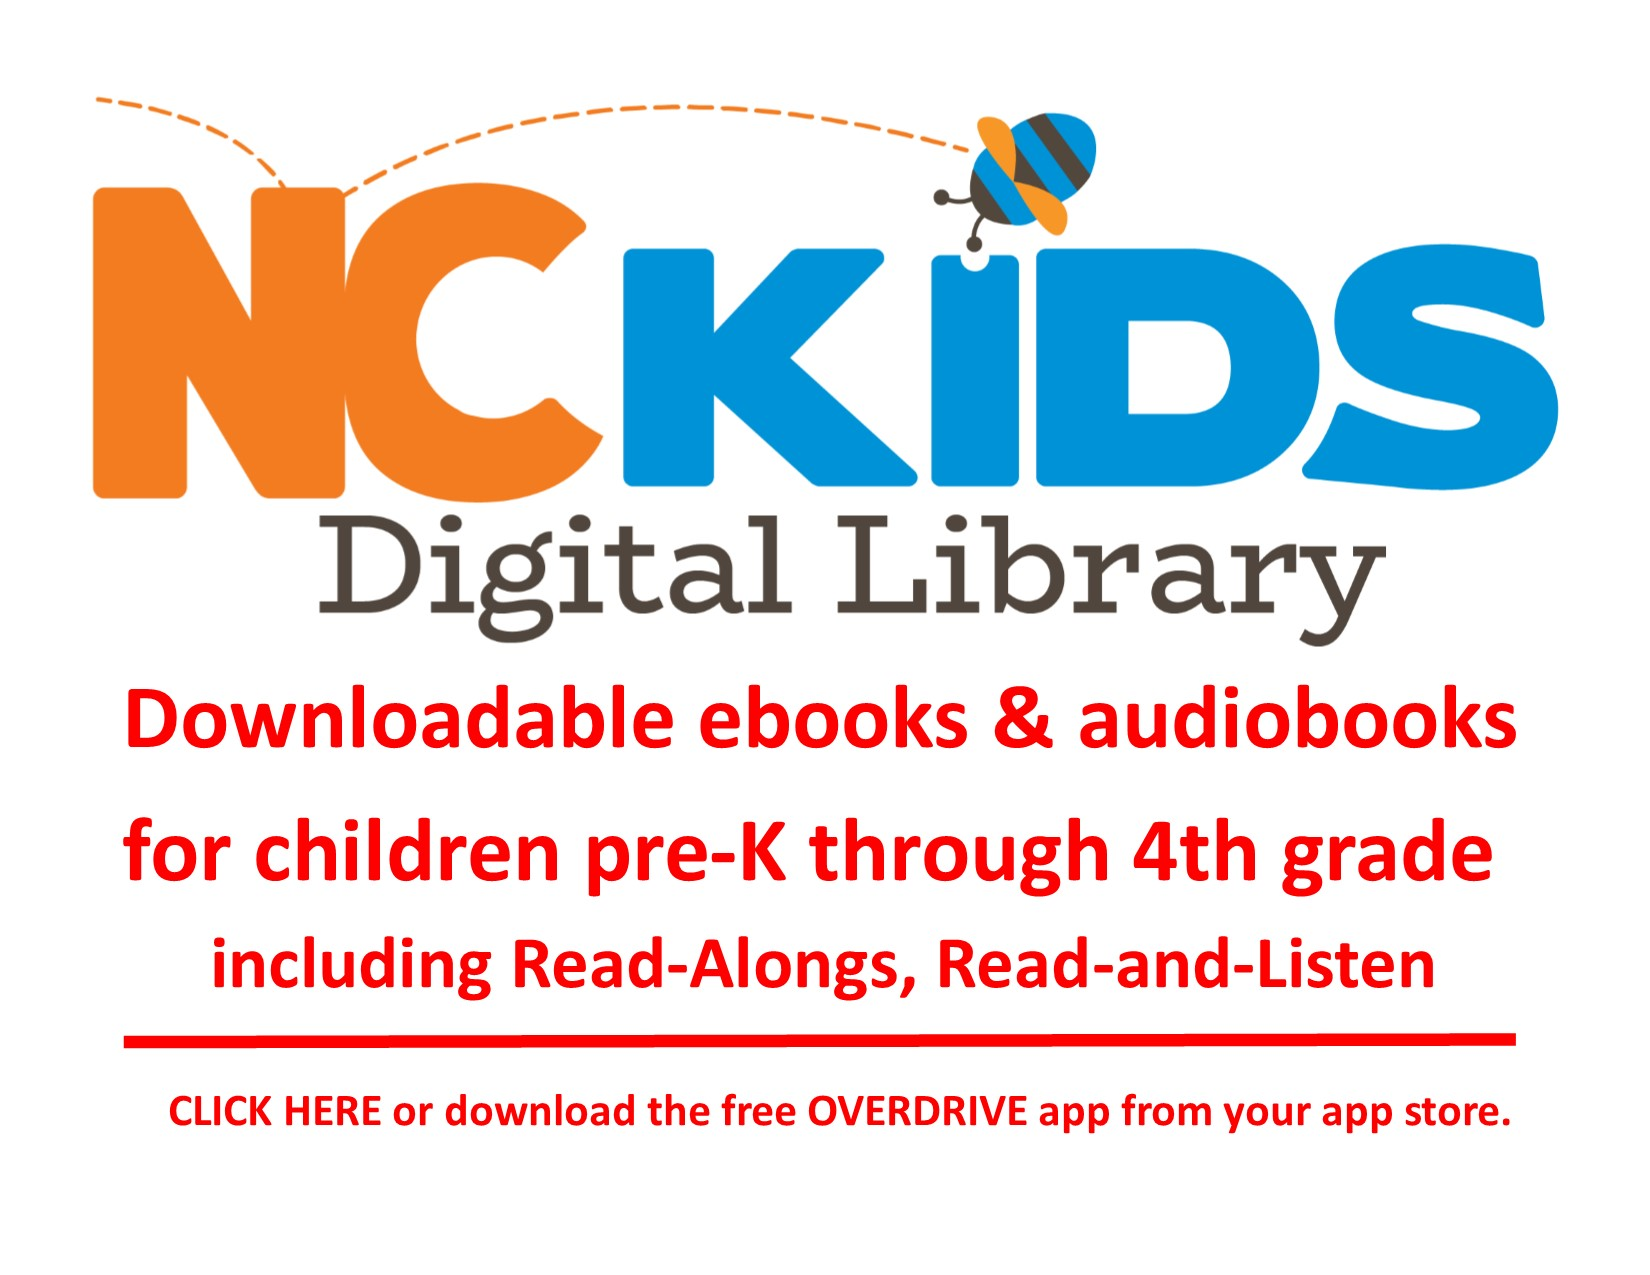 NC Kids Digital Library with downloadable ebooks and audiobooks for pre-K through 4th grade!